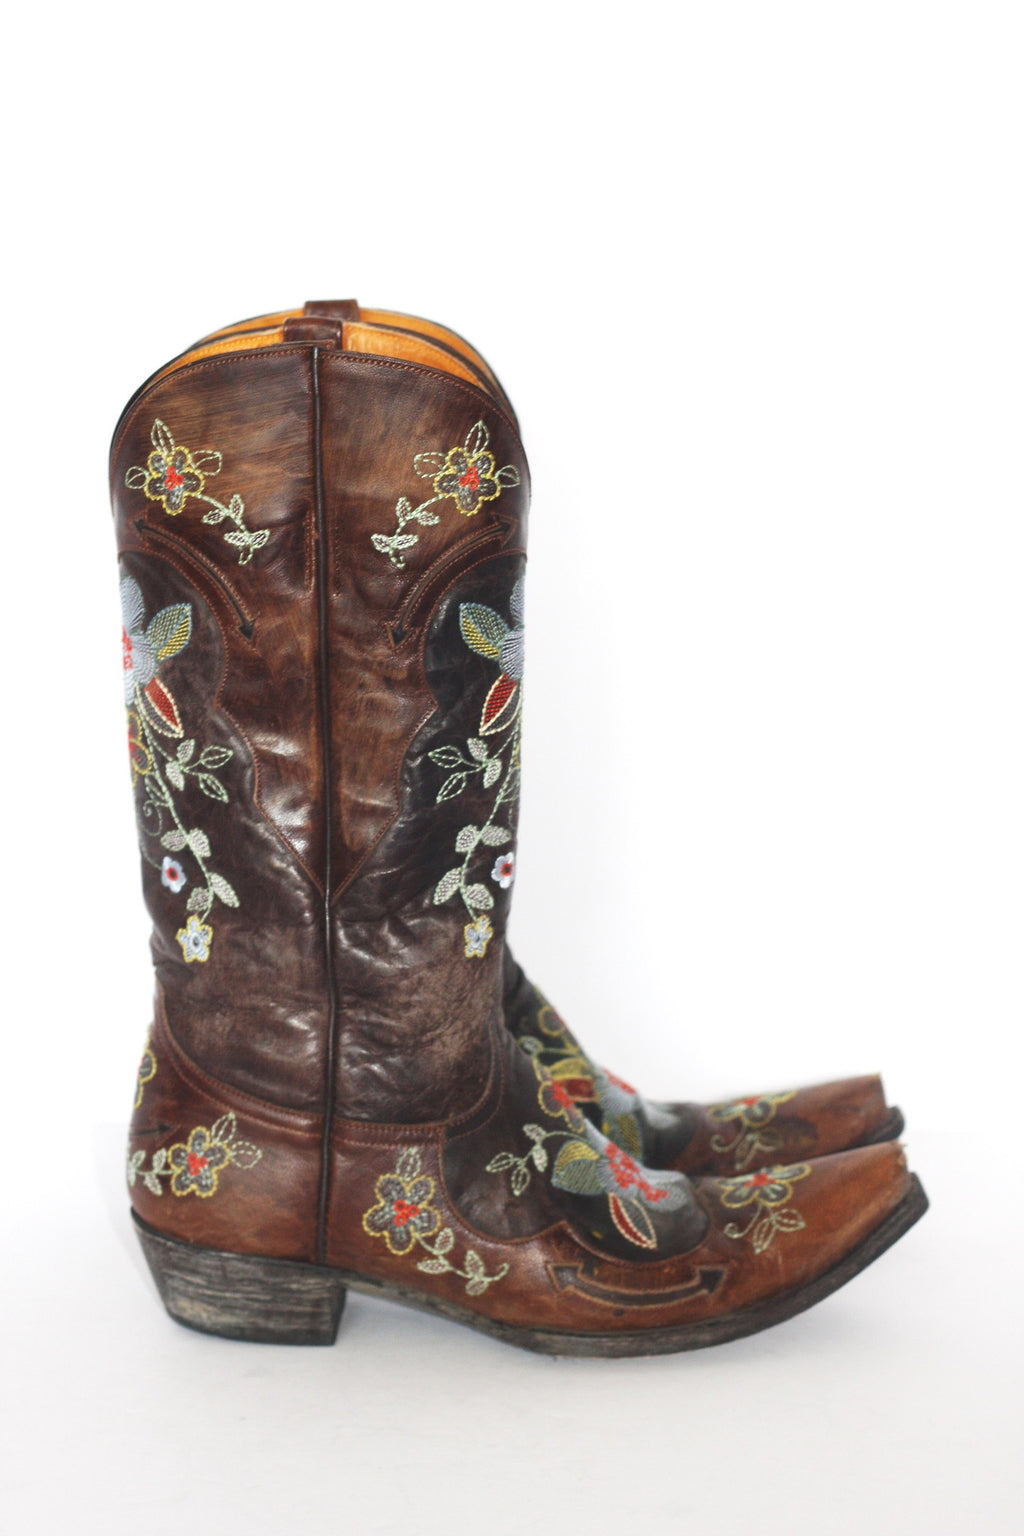 Old Gringo Bonnie Brass Embellished Cowboy Boots - Joyce's Closet  - 1